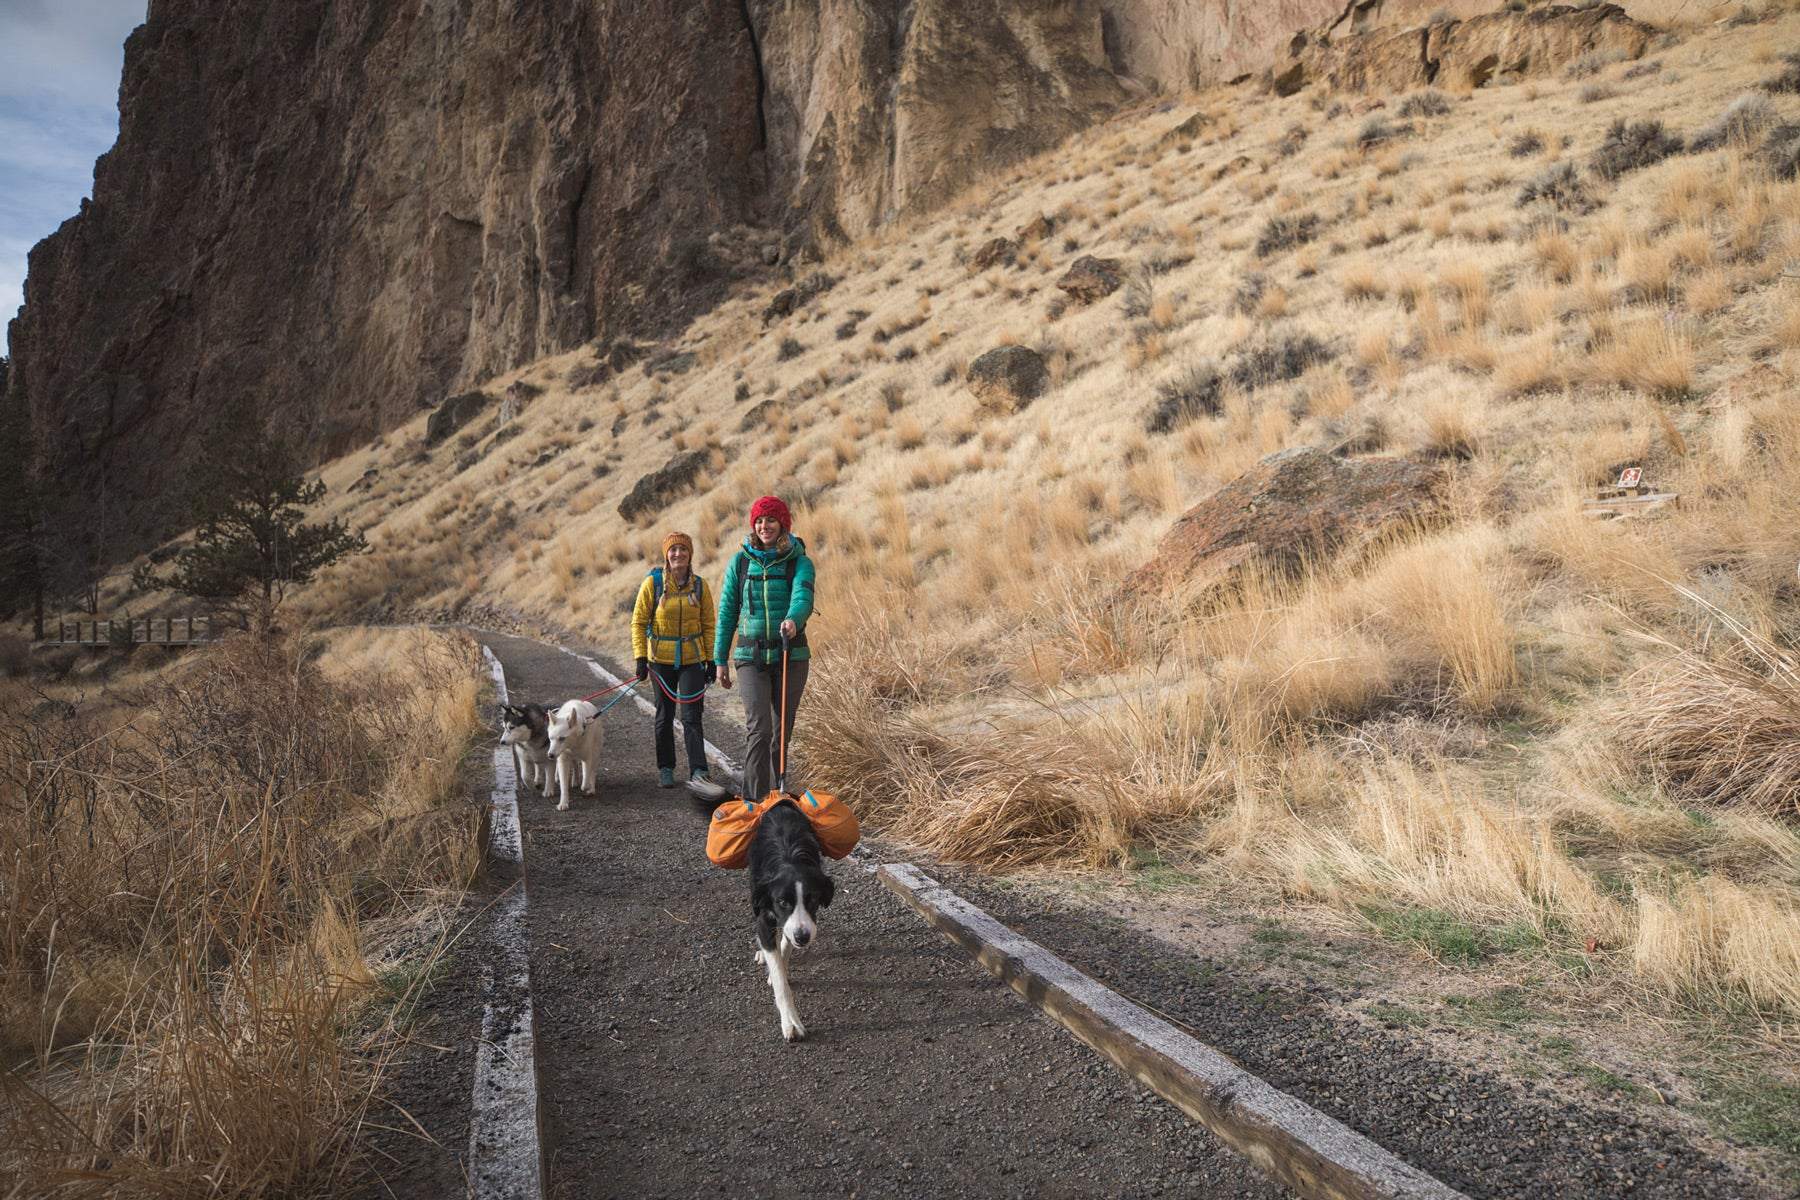 Two climbers with their dogs in approach packs walk out on the trail at Smith Rock.